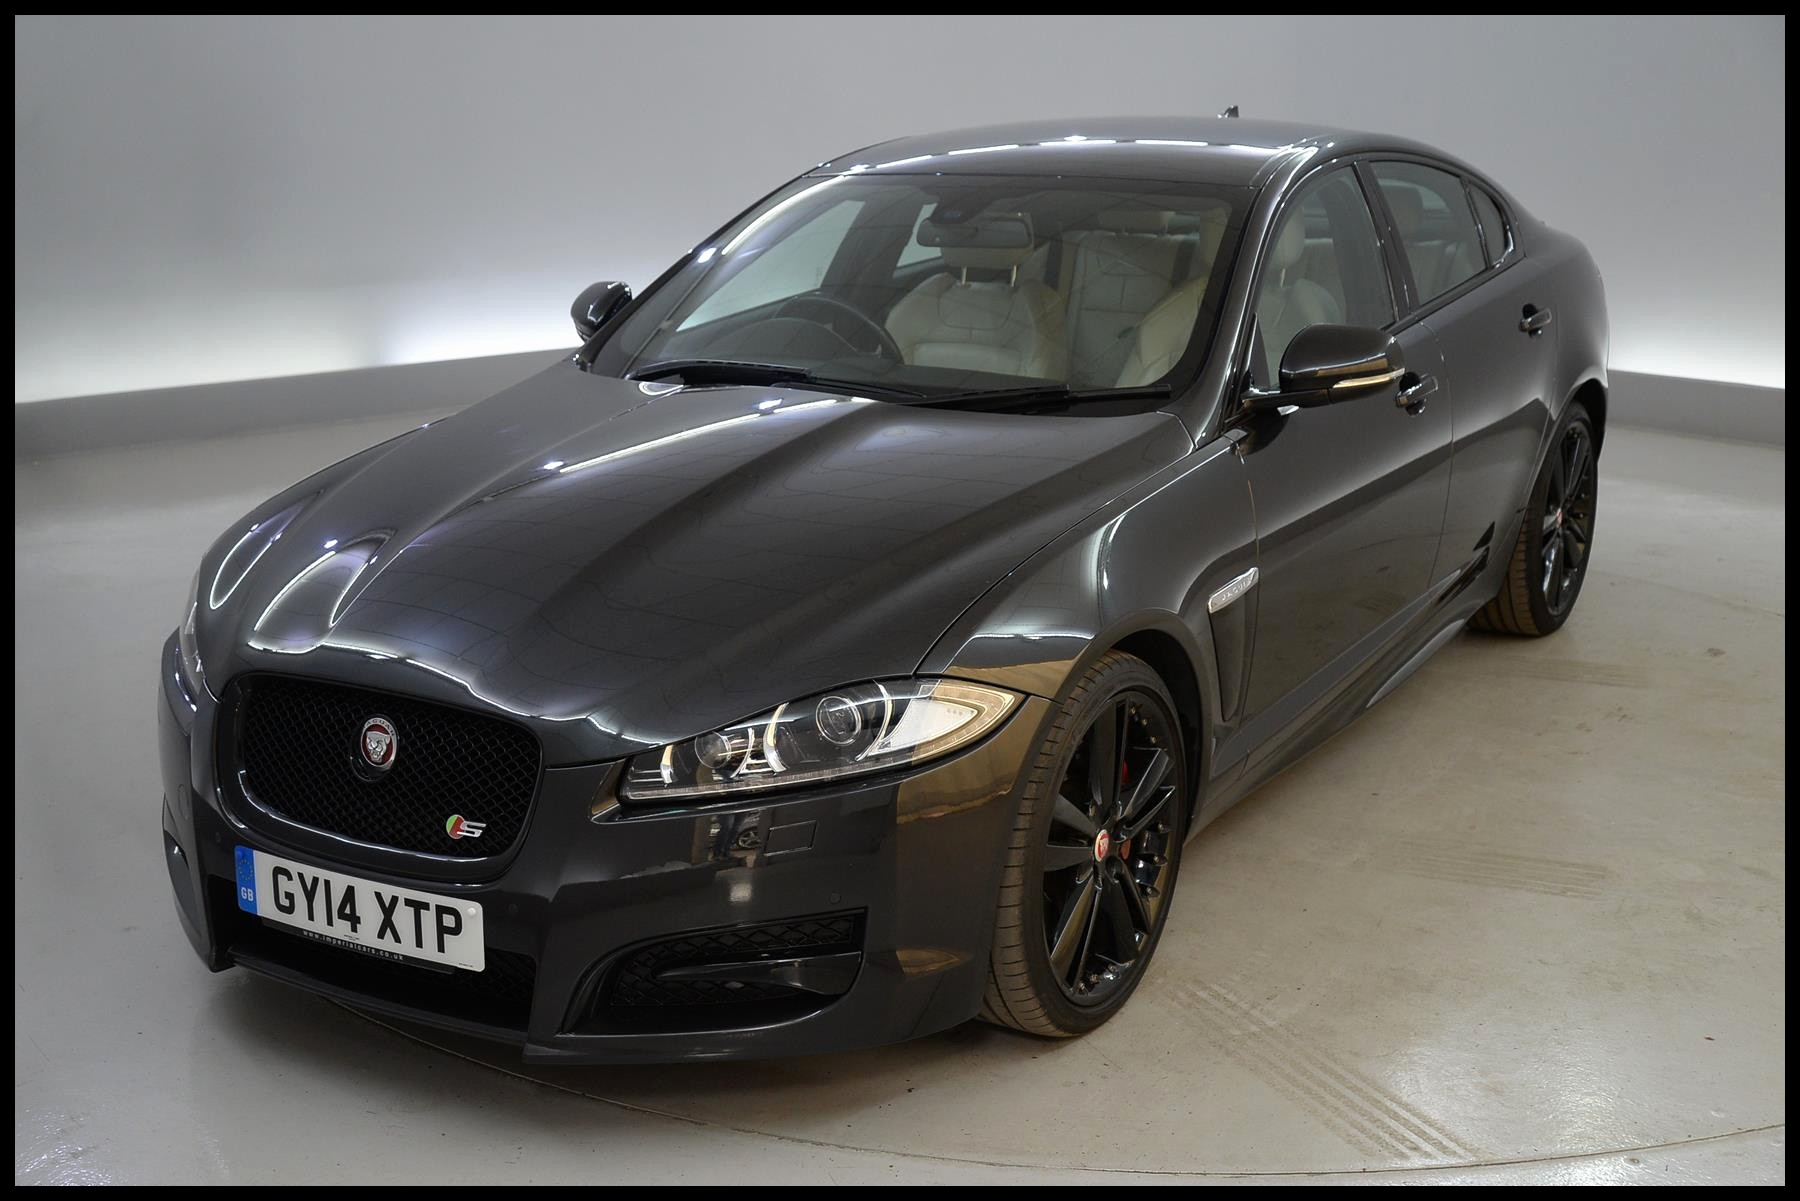 Used Cars for Lease Lovely Reverse Lease Calculator Best Used 2014 Jaguar Xf 3 0d V6